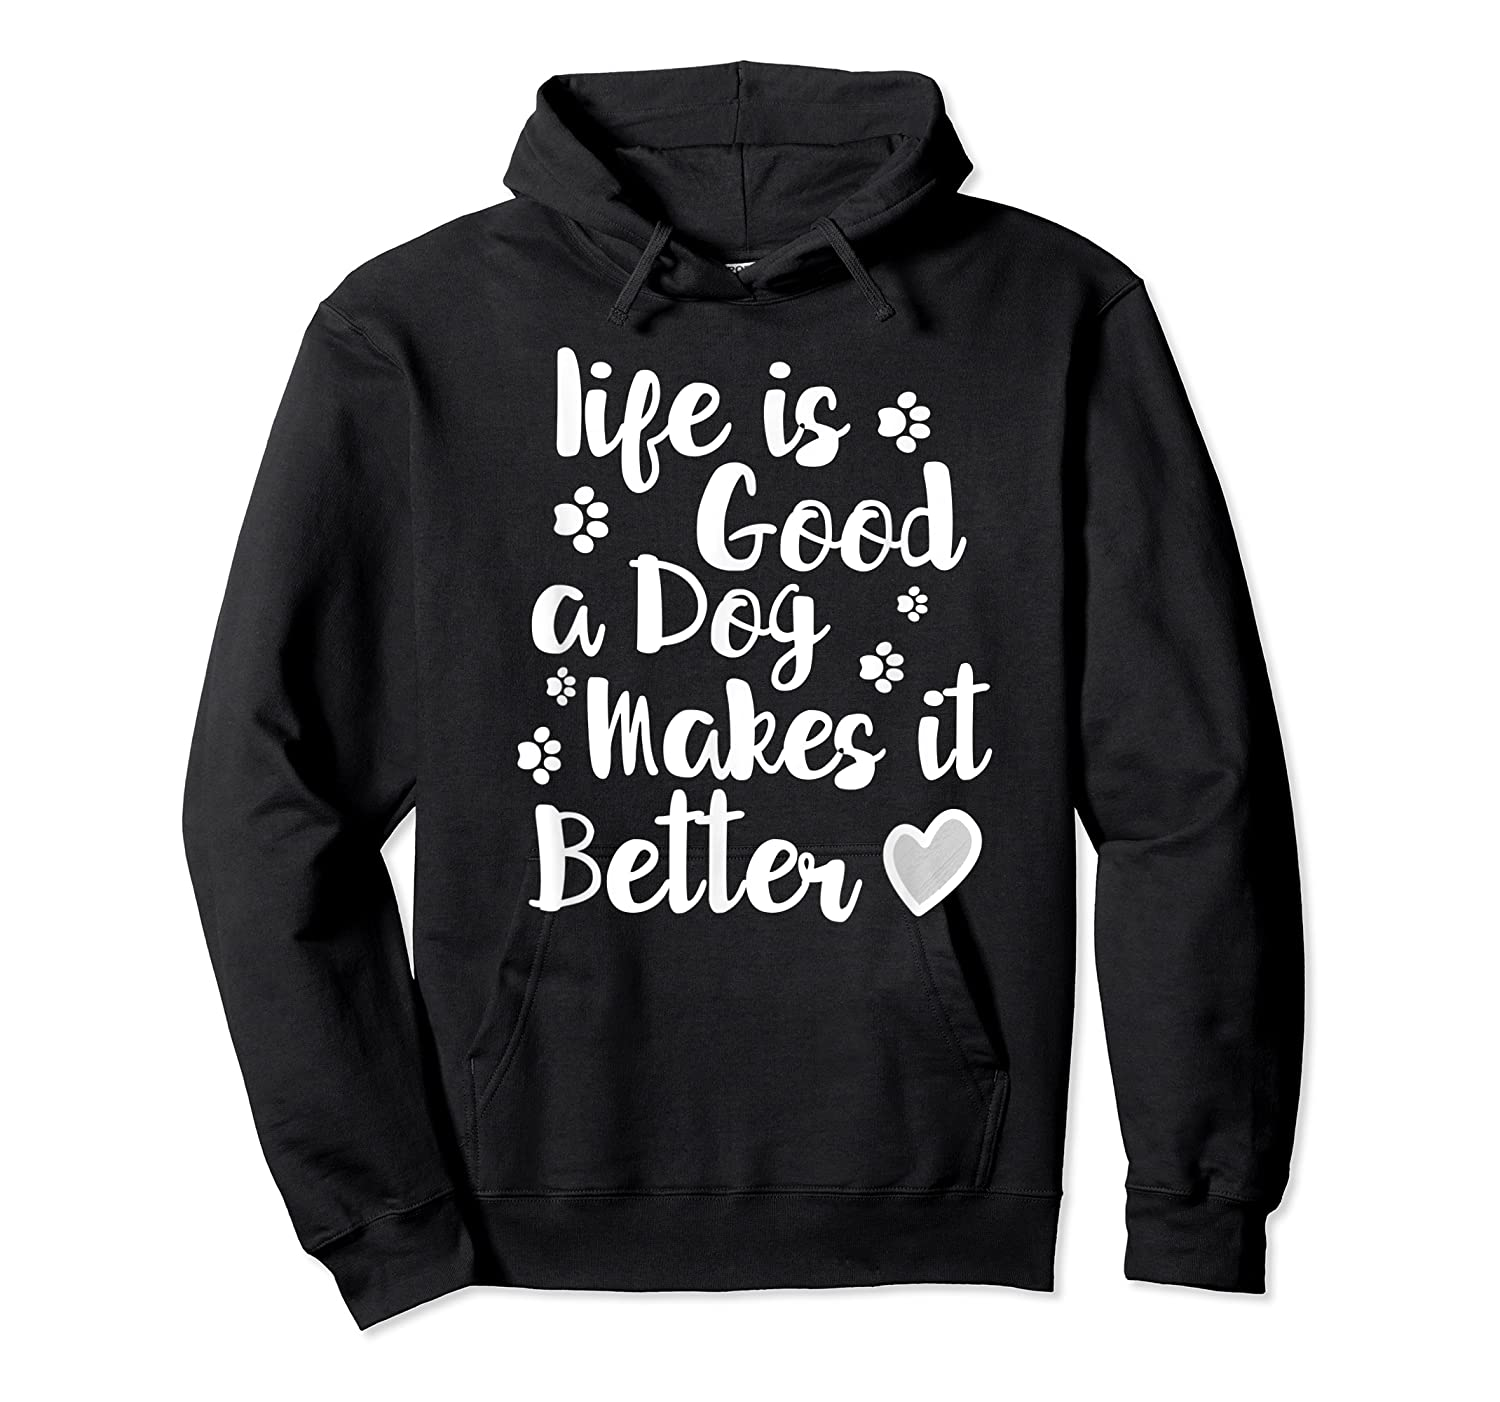 A Dog Makes It Better For Dog Lovers Tshirt T-shirt Unisex Pullover Hoodie